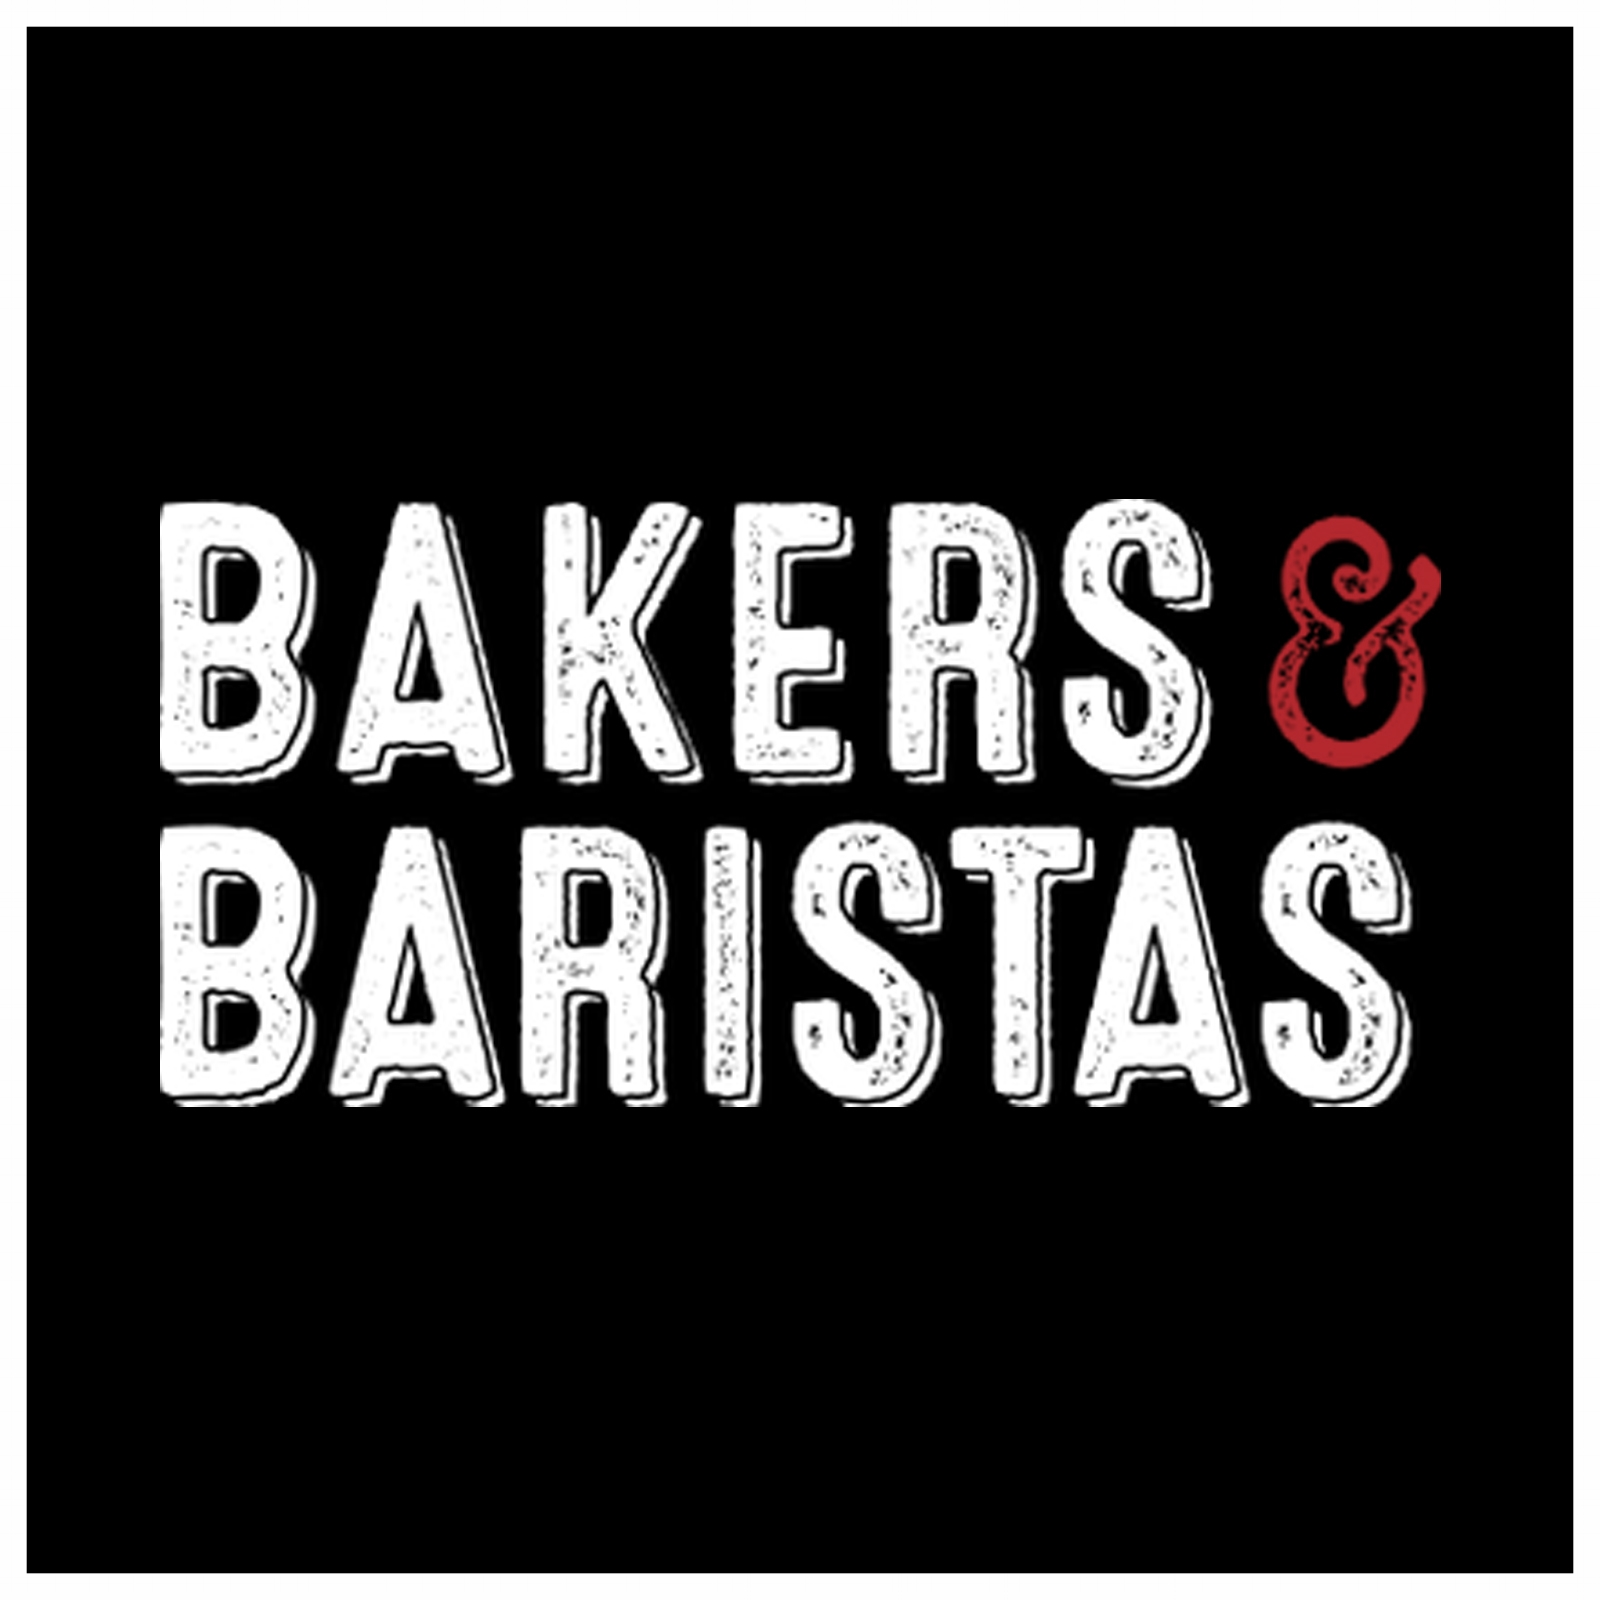 bakers & baristas - 501 7TH STREET NWWASHINGTON, DC 20004